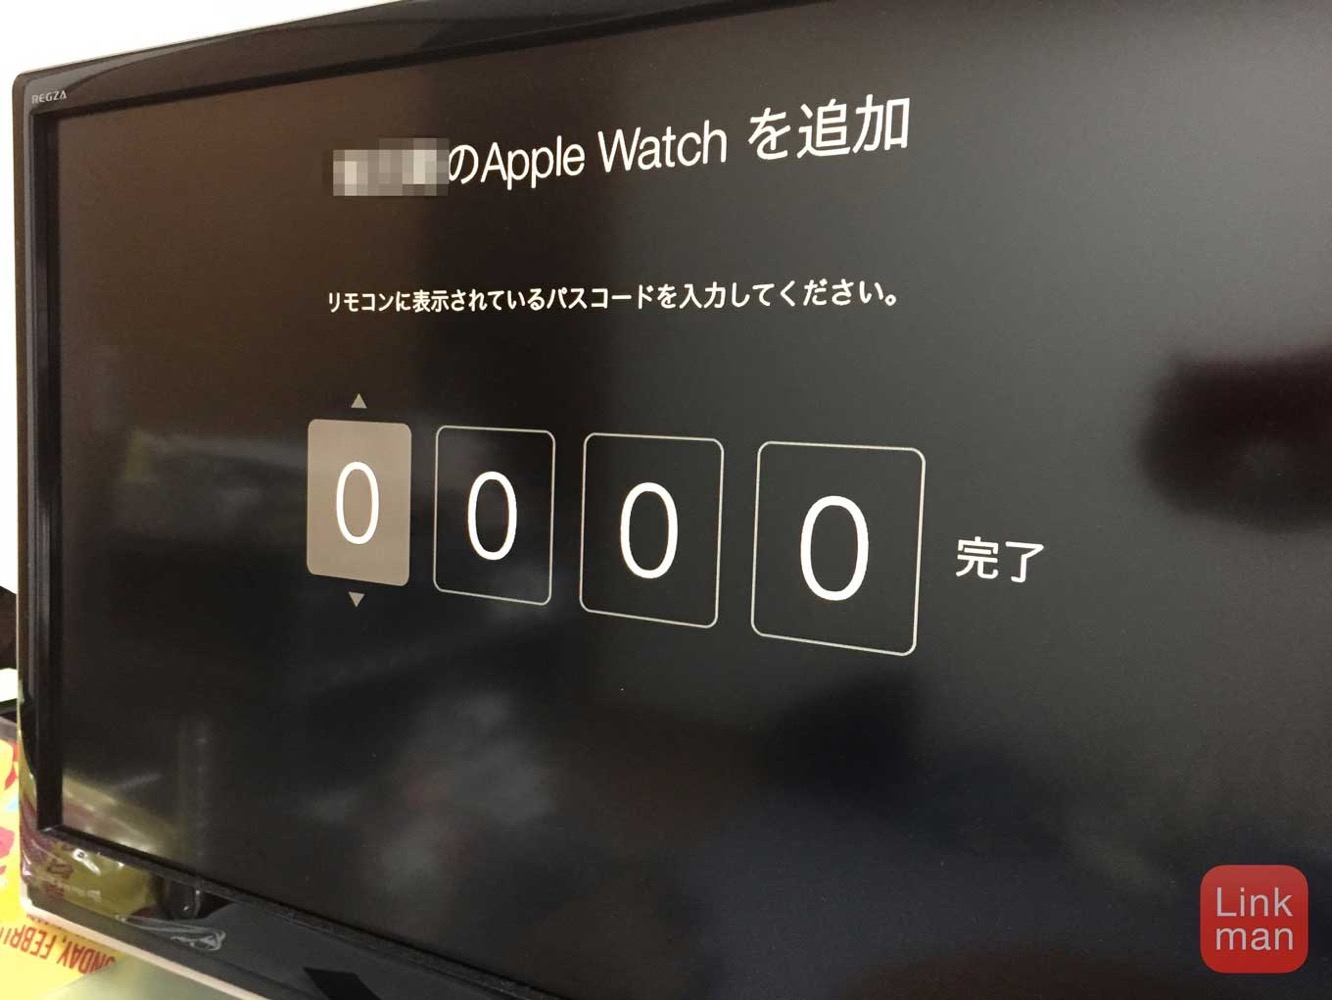 Applewatchappletv 05